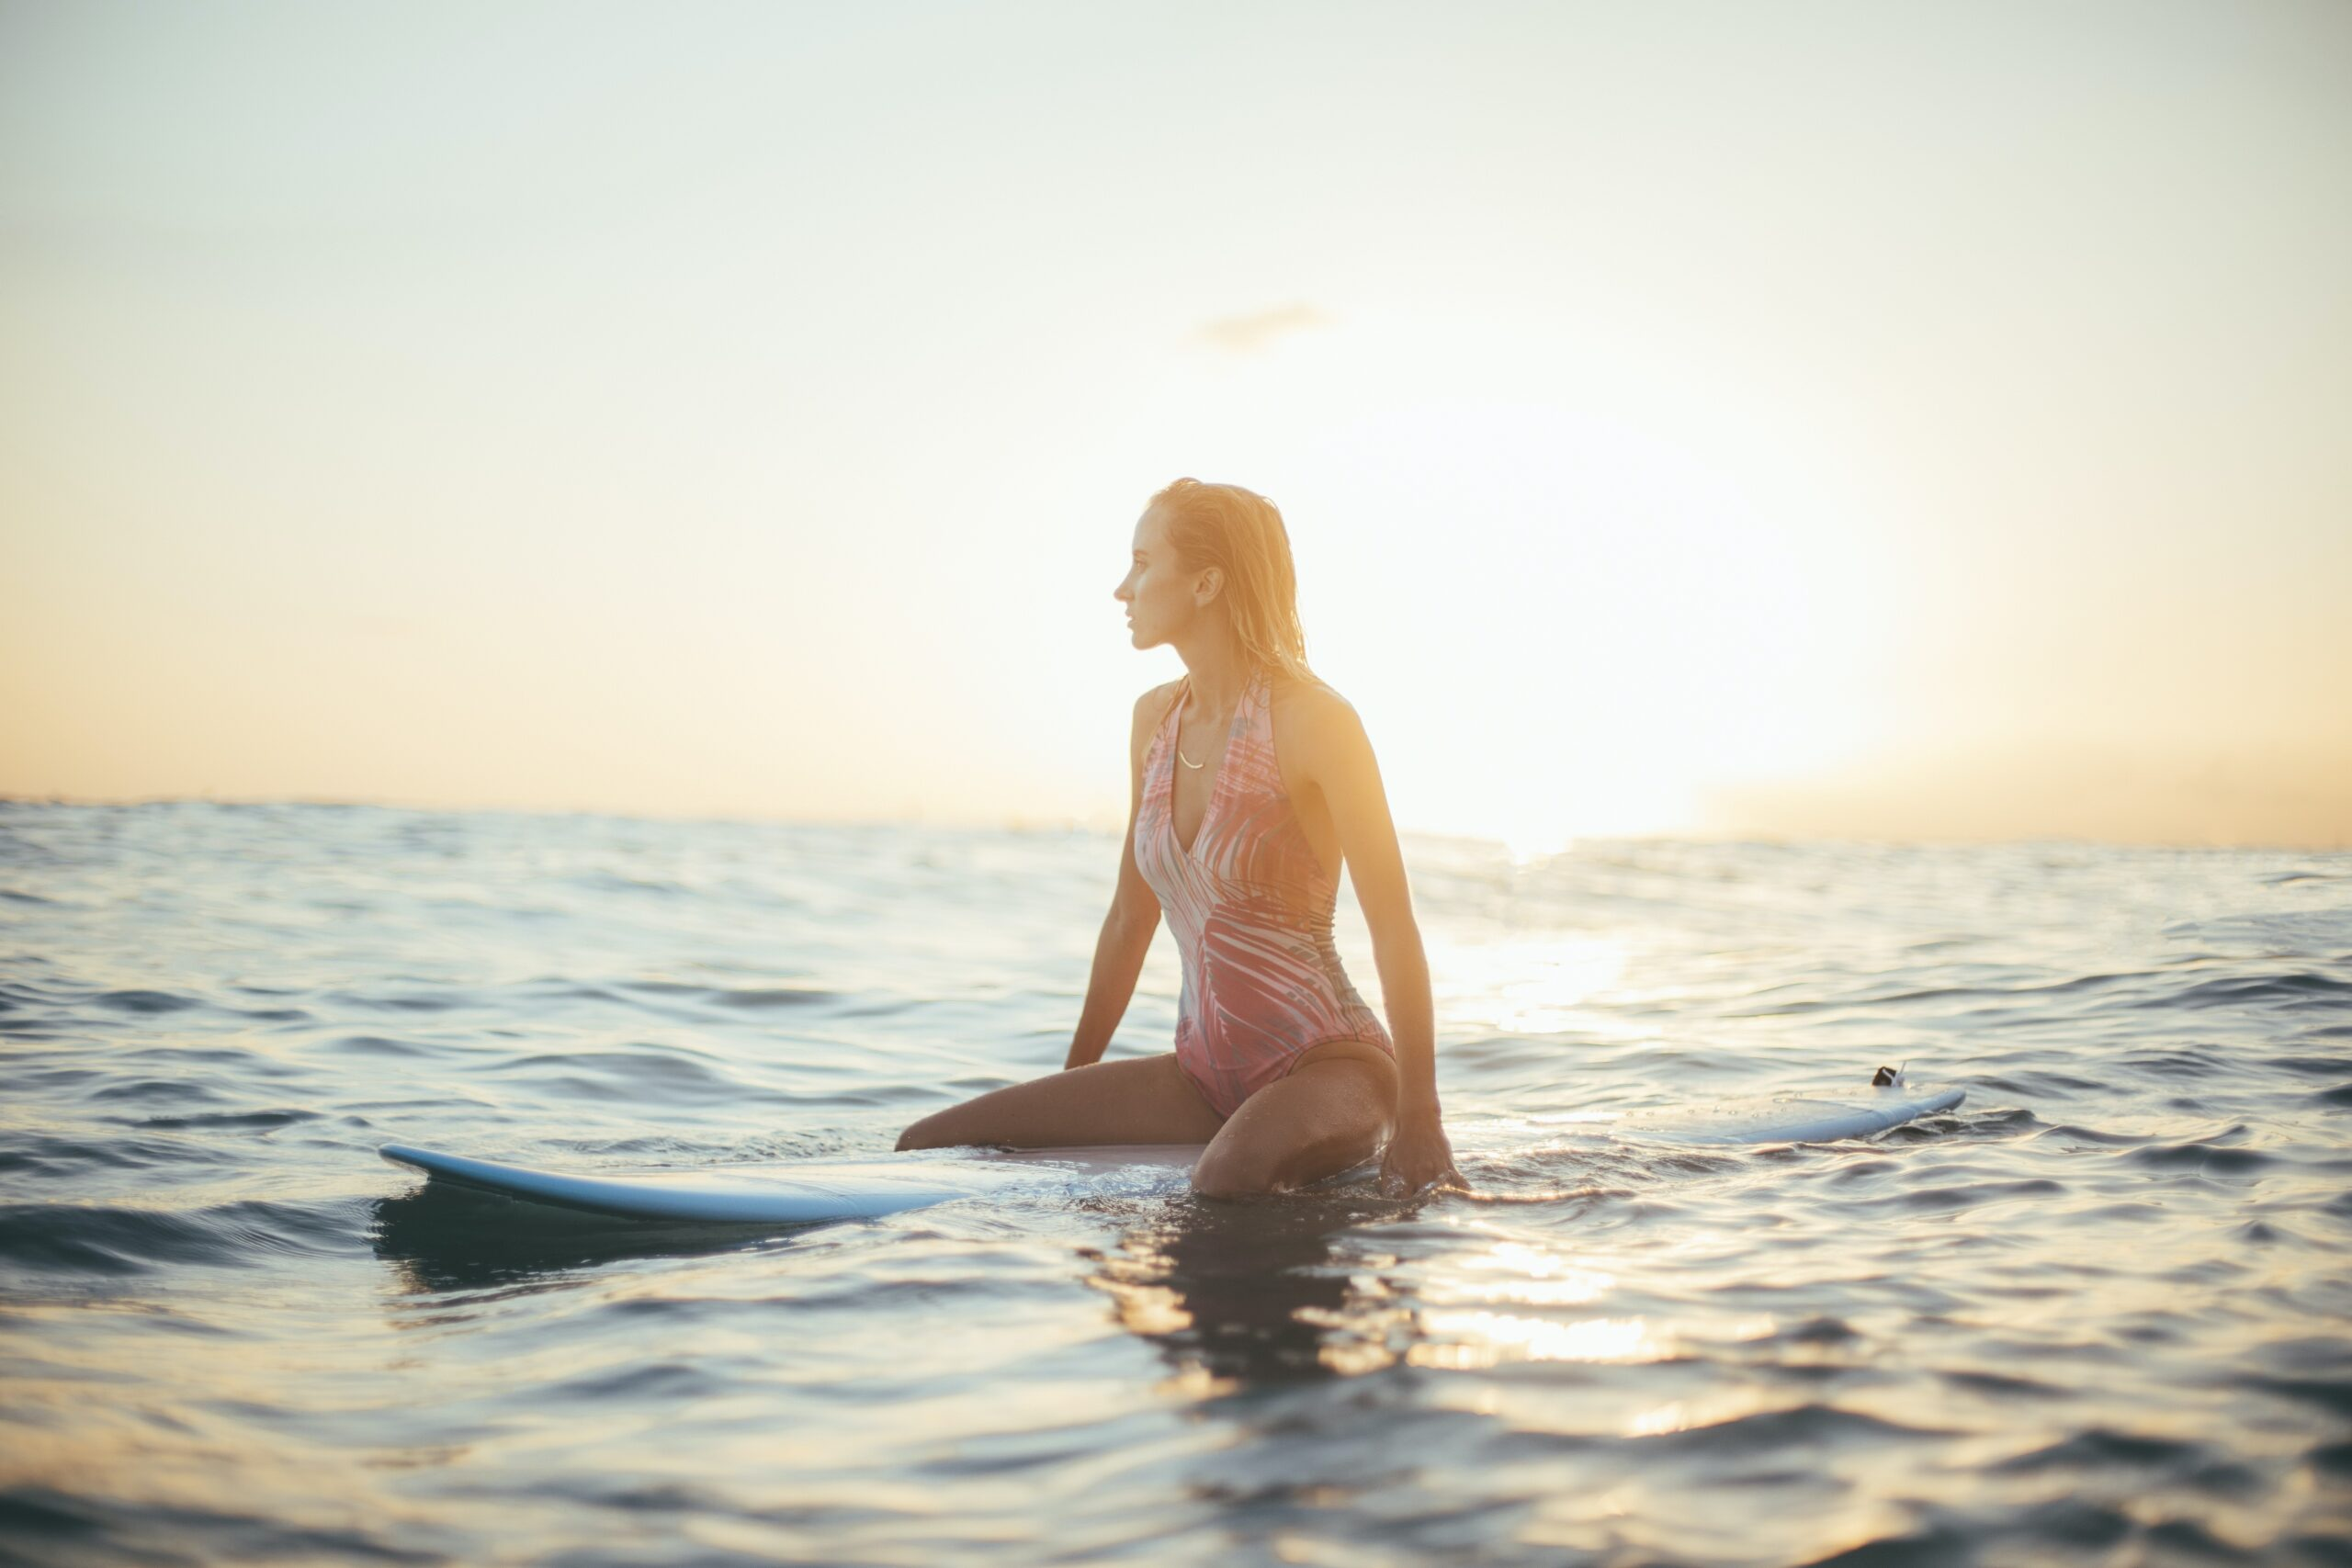 How to Prep Your Skin for a Summer Beach Day